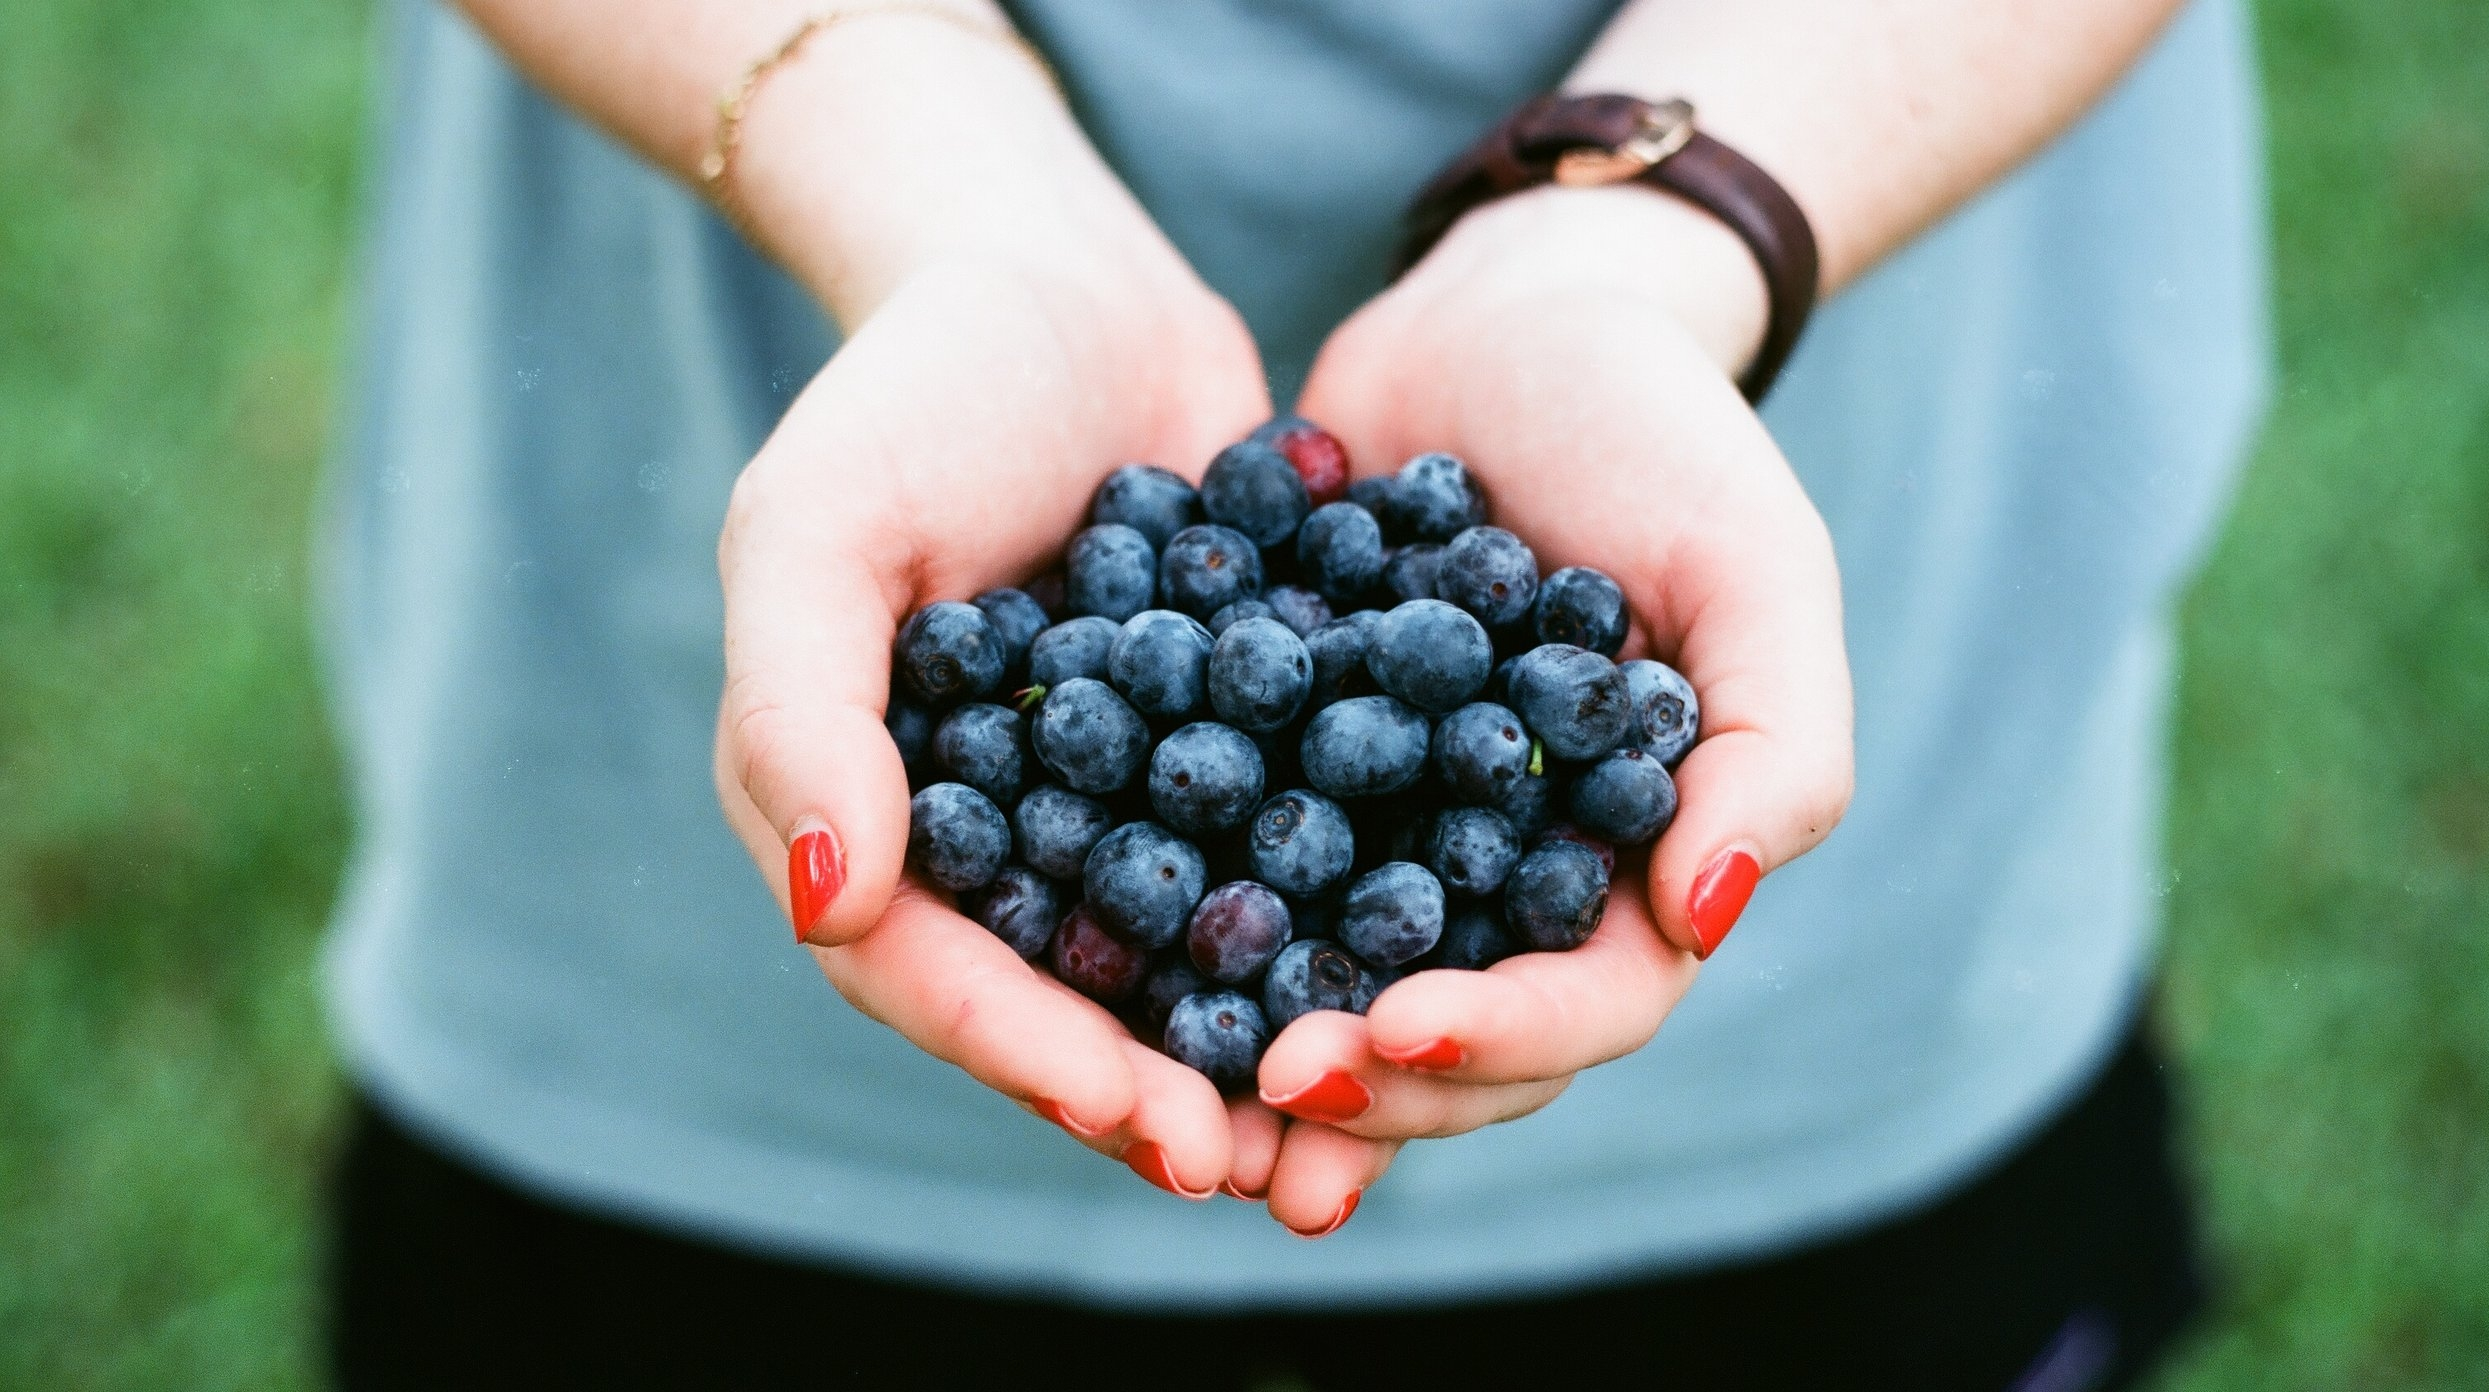 Blueberries are so easy to grow. There is a native blueberry with evergreen foliage that changes color with the season. Enjoy berries in June and harvest the leaves for tea in January and February.